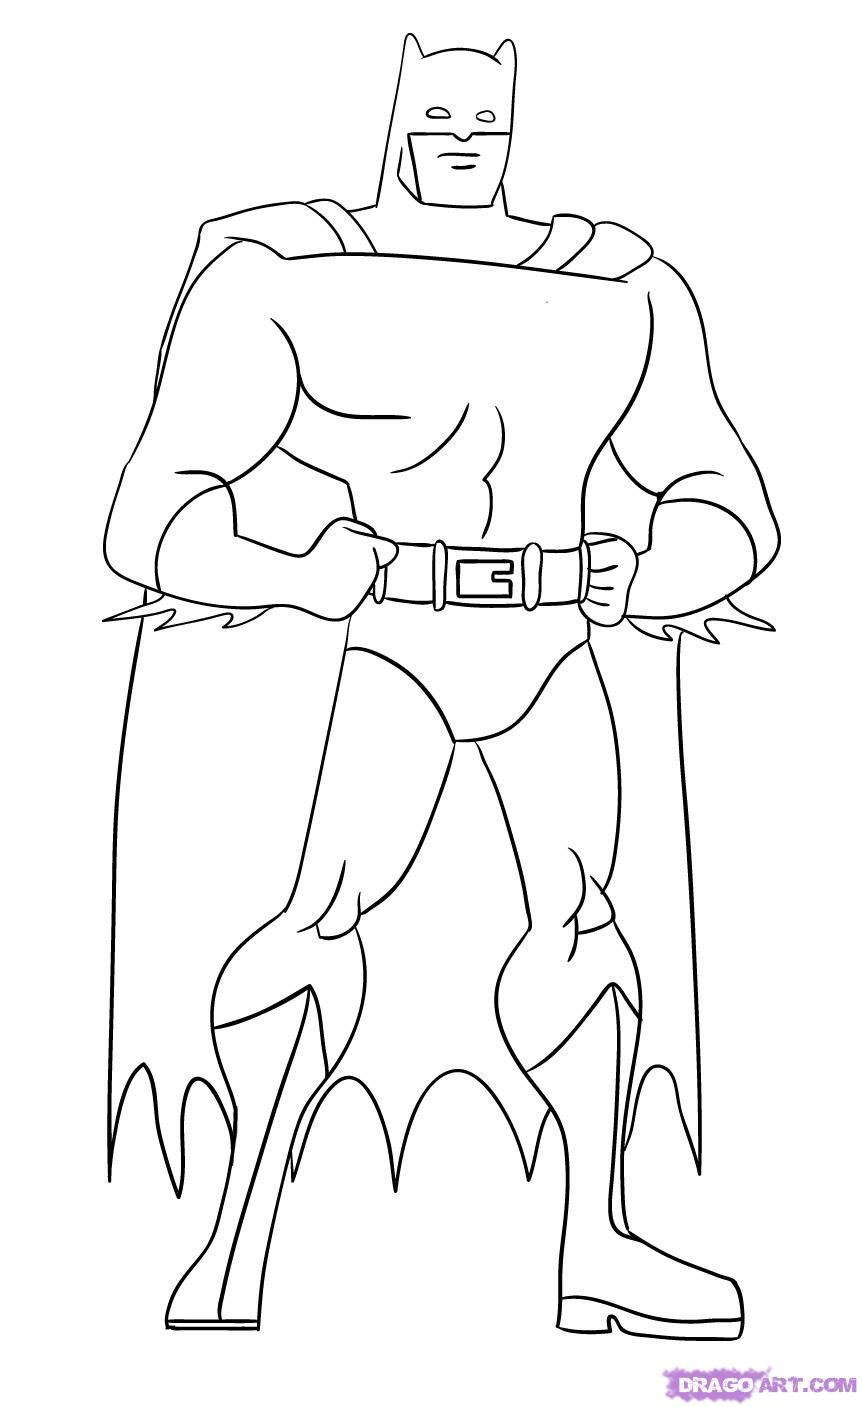 How to draw the Batman with a pencil step by step